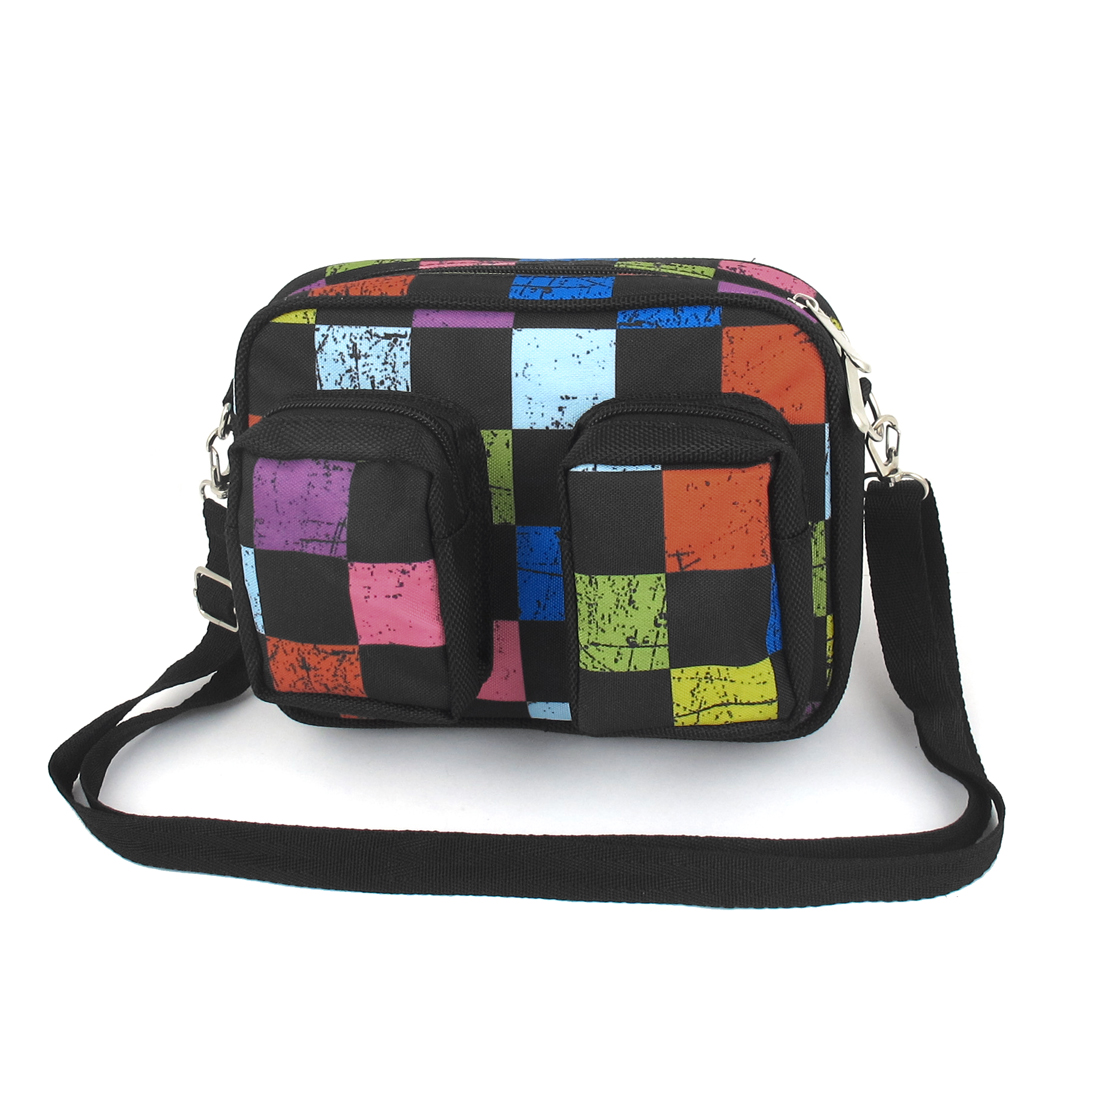 Multicolor Adjustable Shoulder Strap 2 Small Pockets Outside Tool Holder Bag 20cmx16cmx9cm